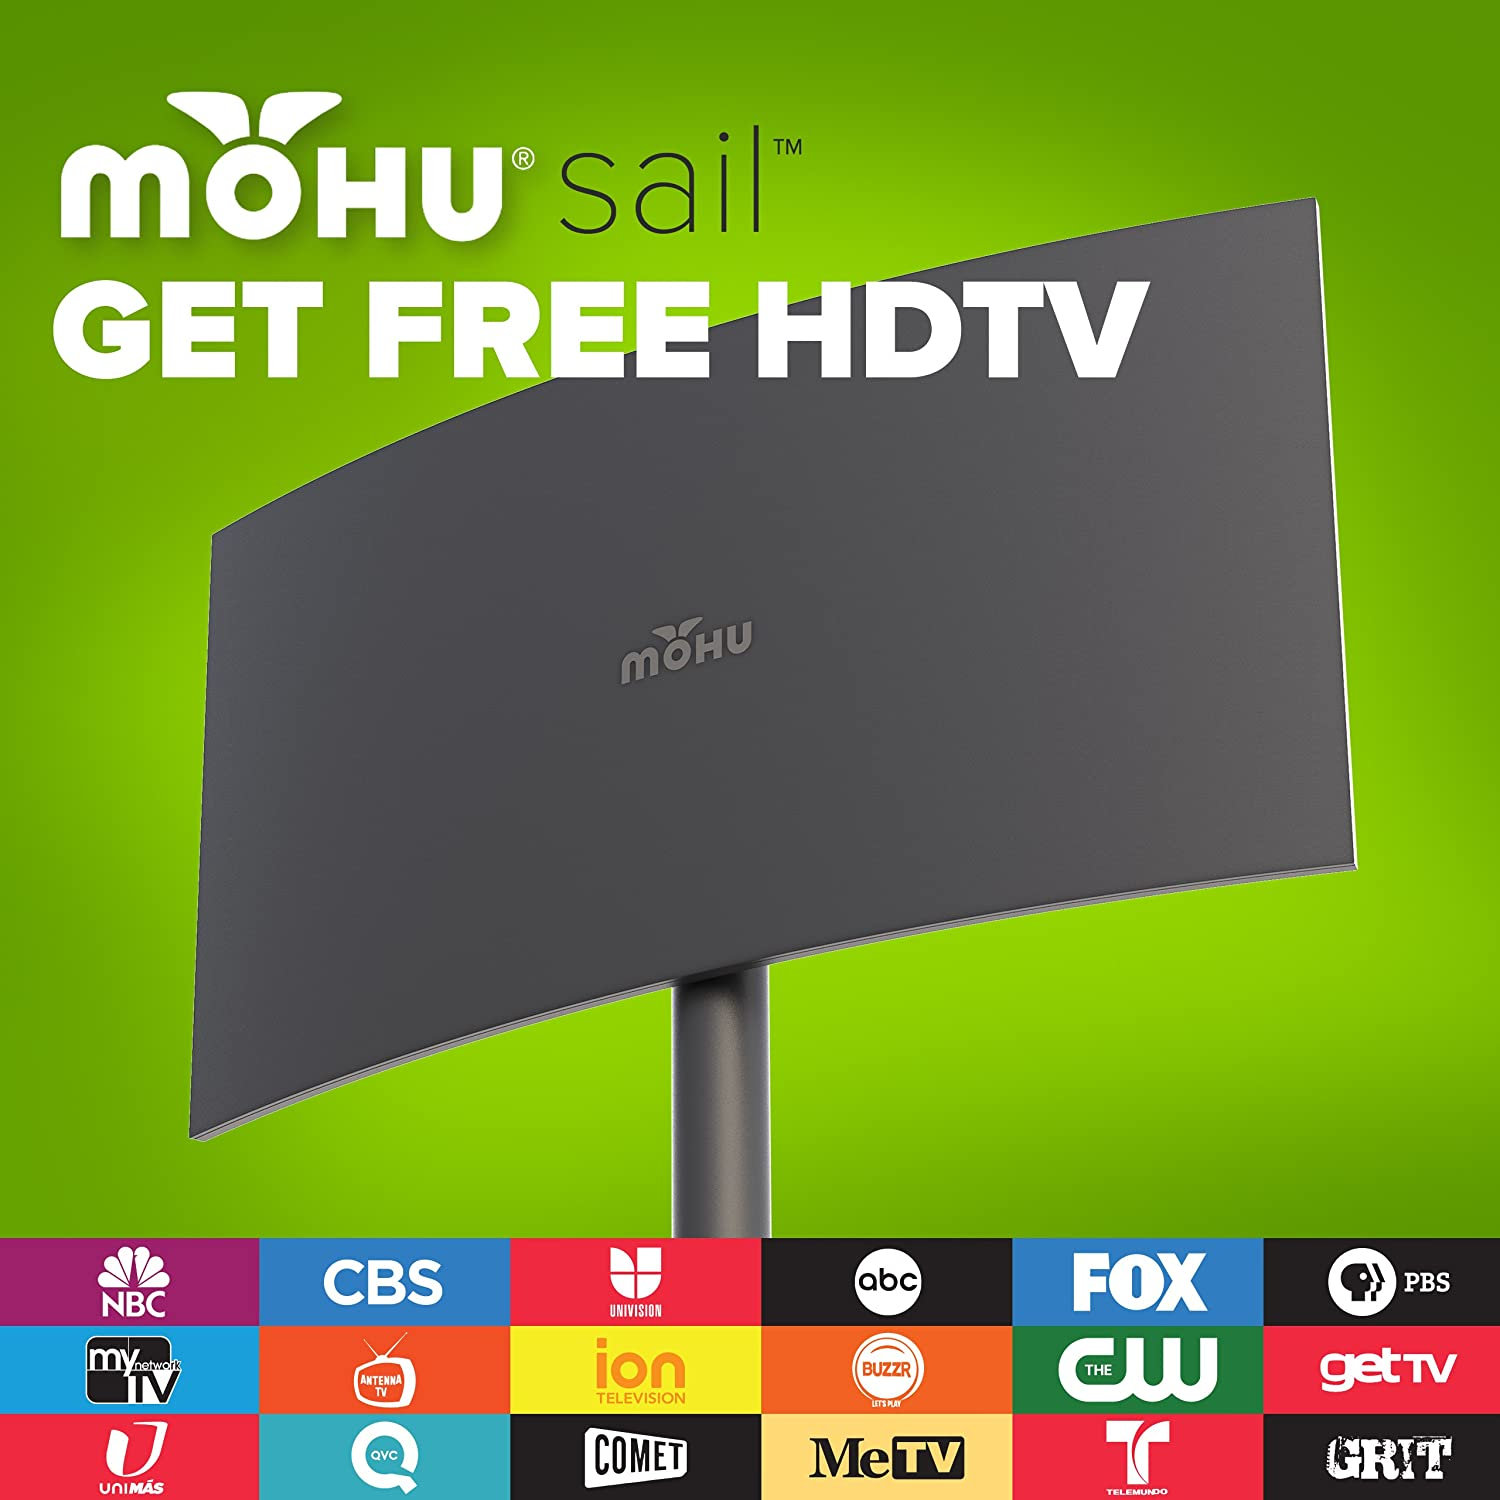 Mohu Sail Outdoor Tv Antenna Multidirectional 75 Mile 110502 The Problems And Potential Of Portable Power Range For Free Open Box Home Audio Theater